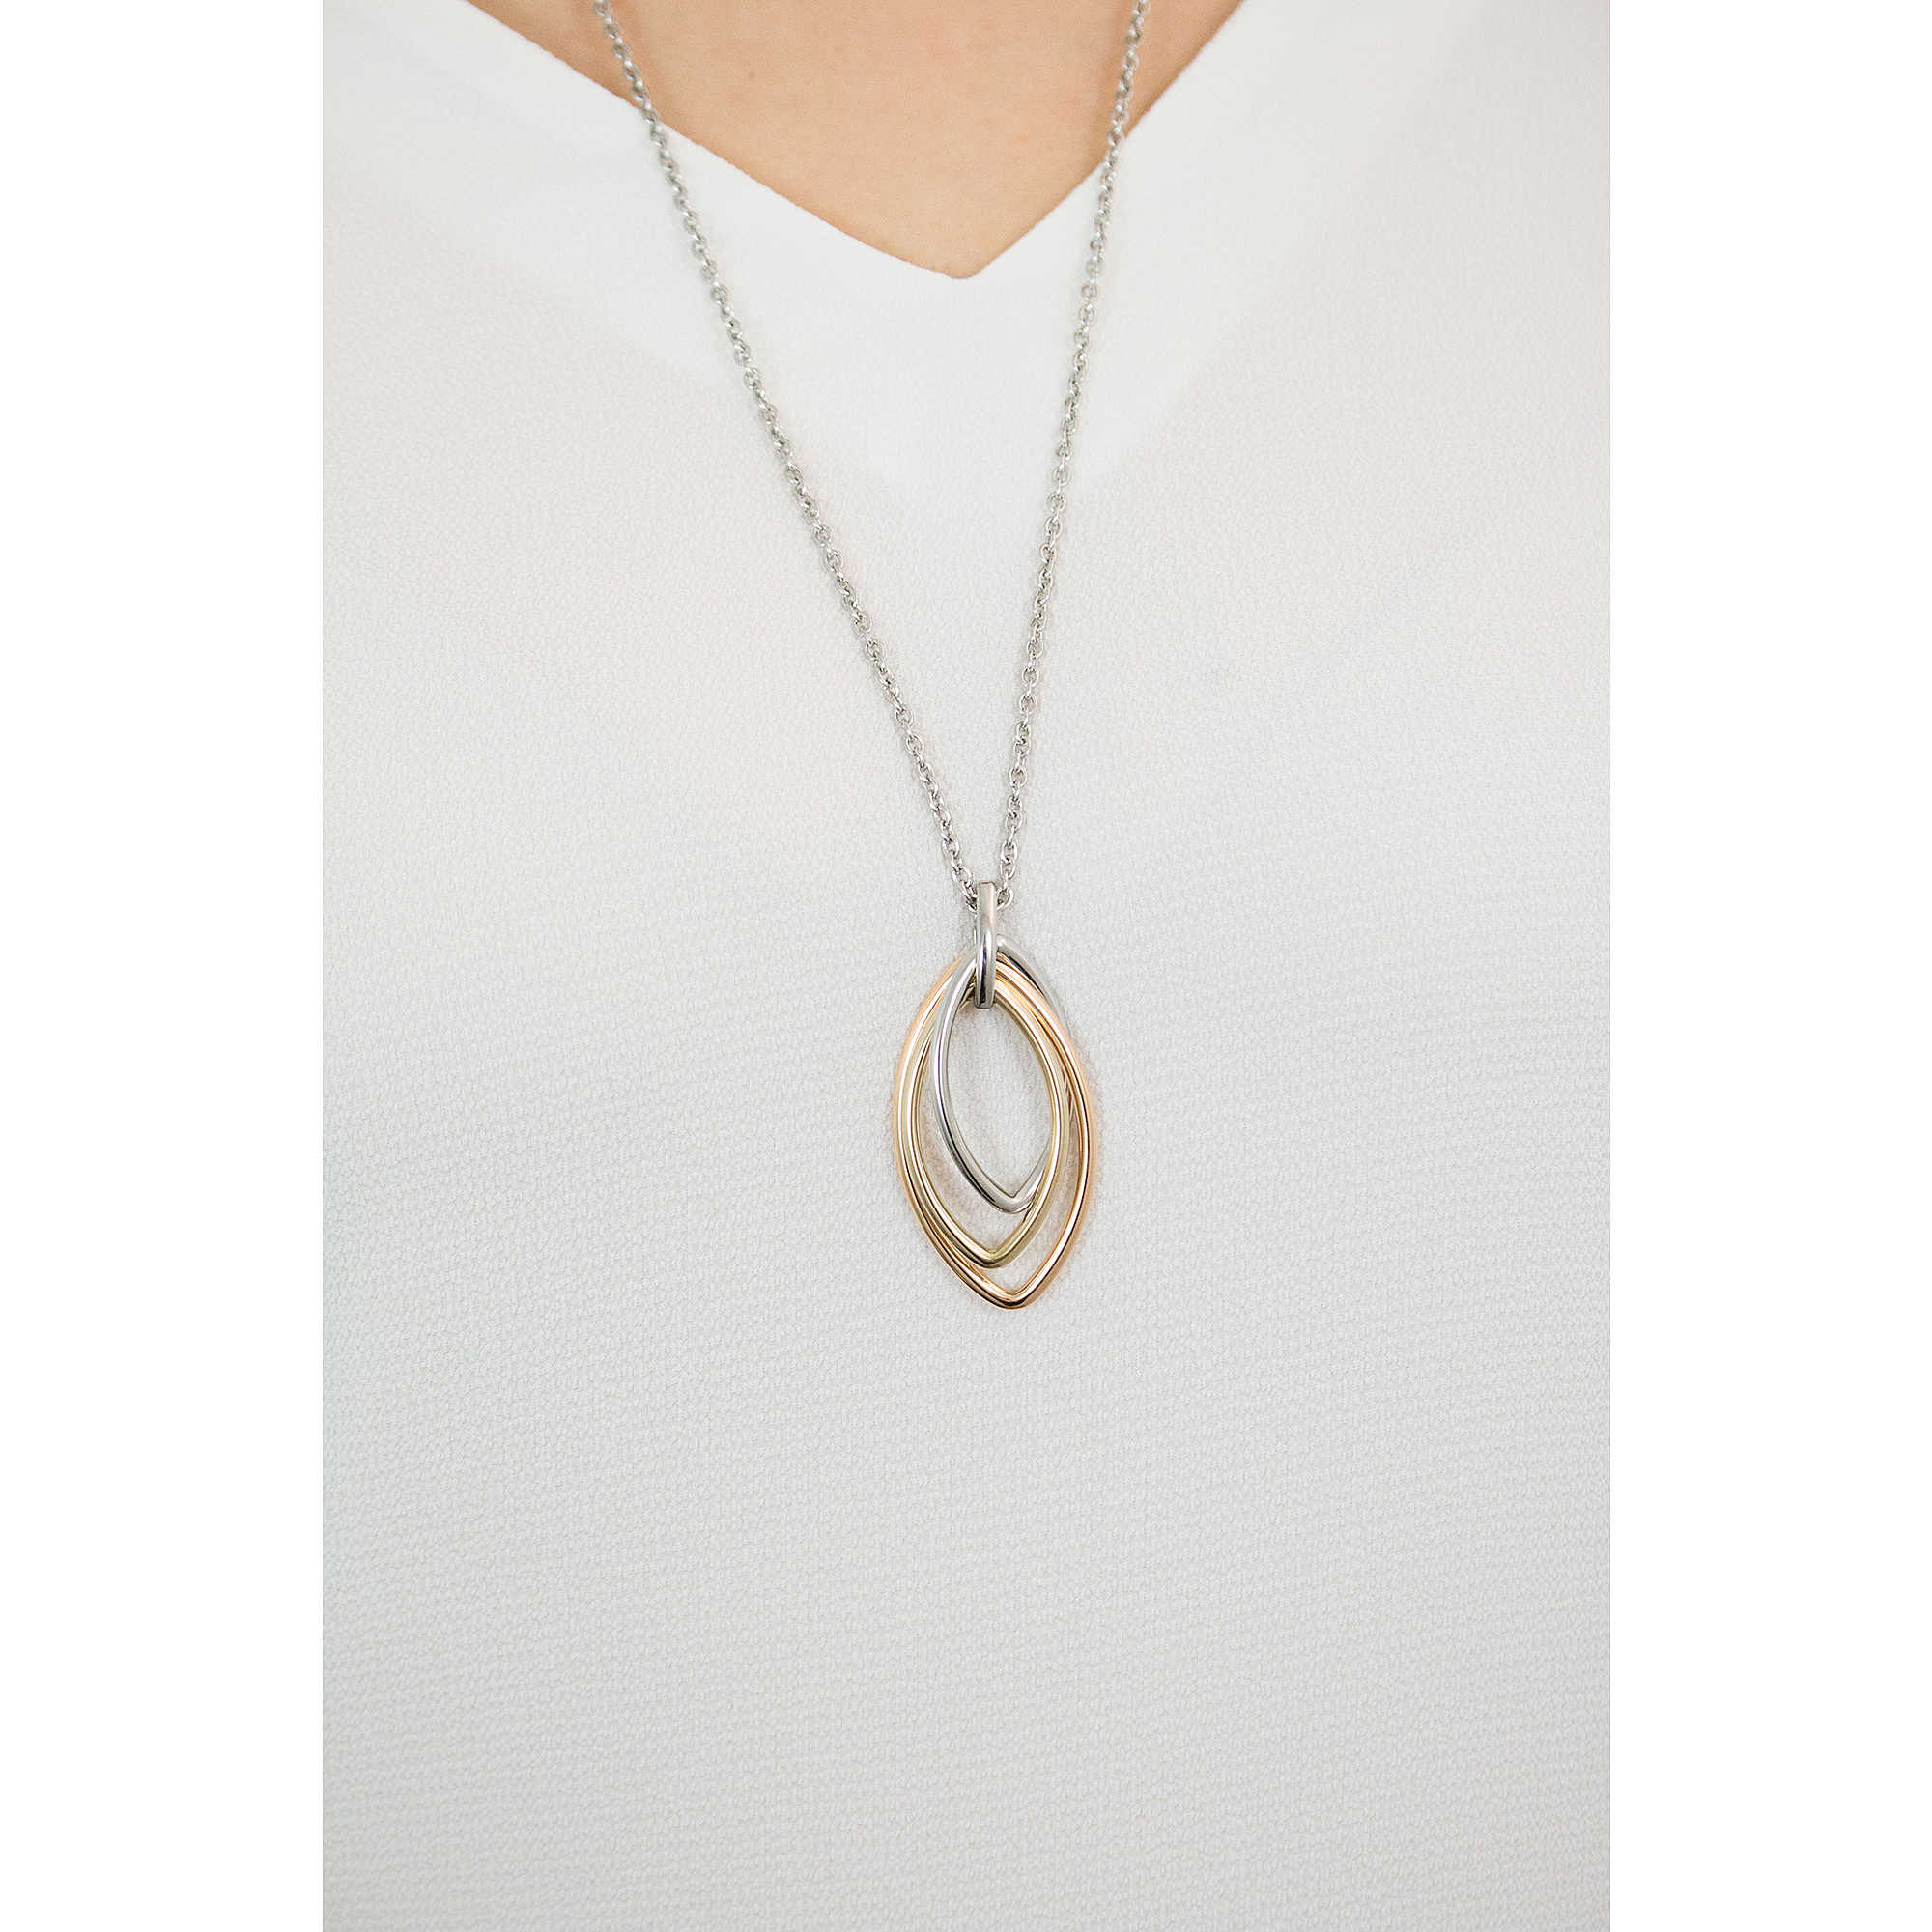 Fossil Women Stainless Steel Pendant Necklace - JF02779998 65oKomGiL